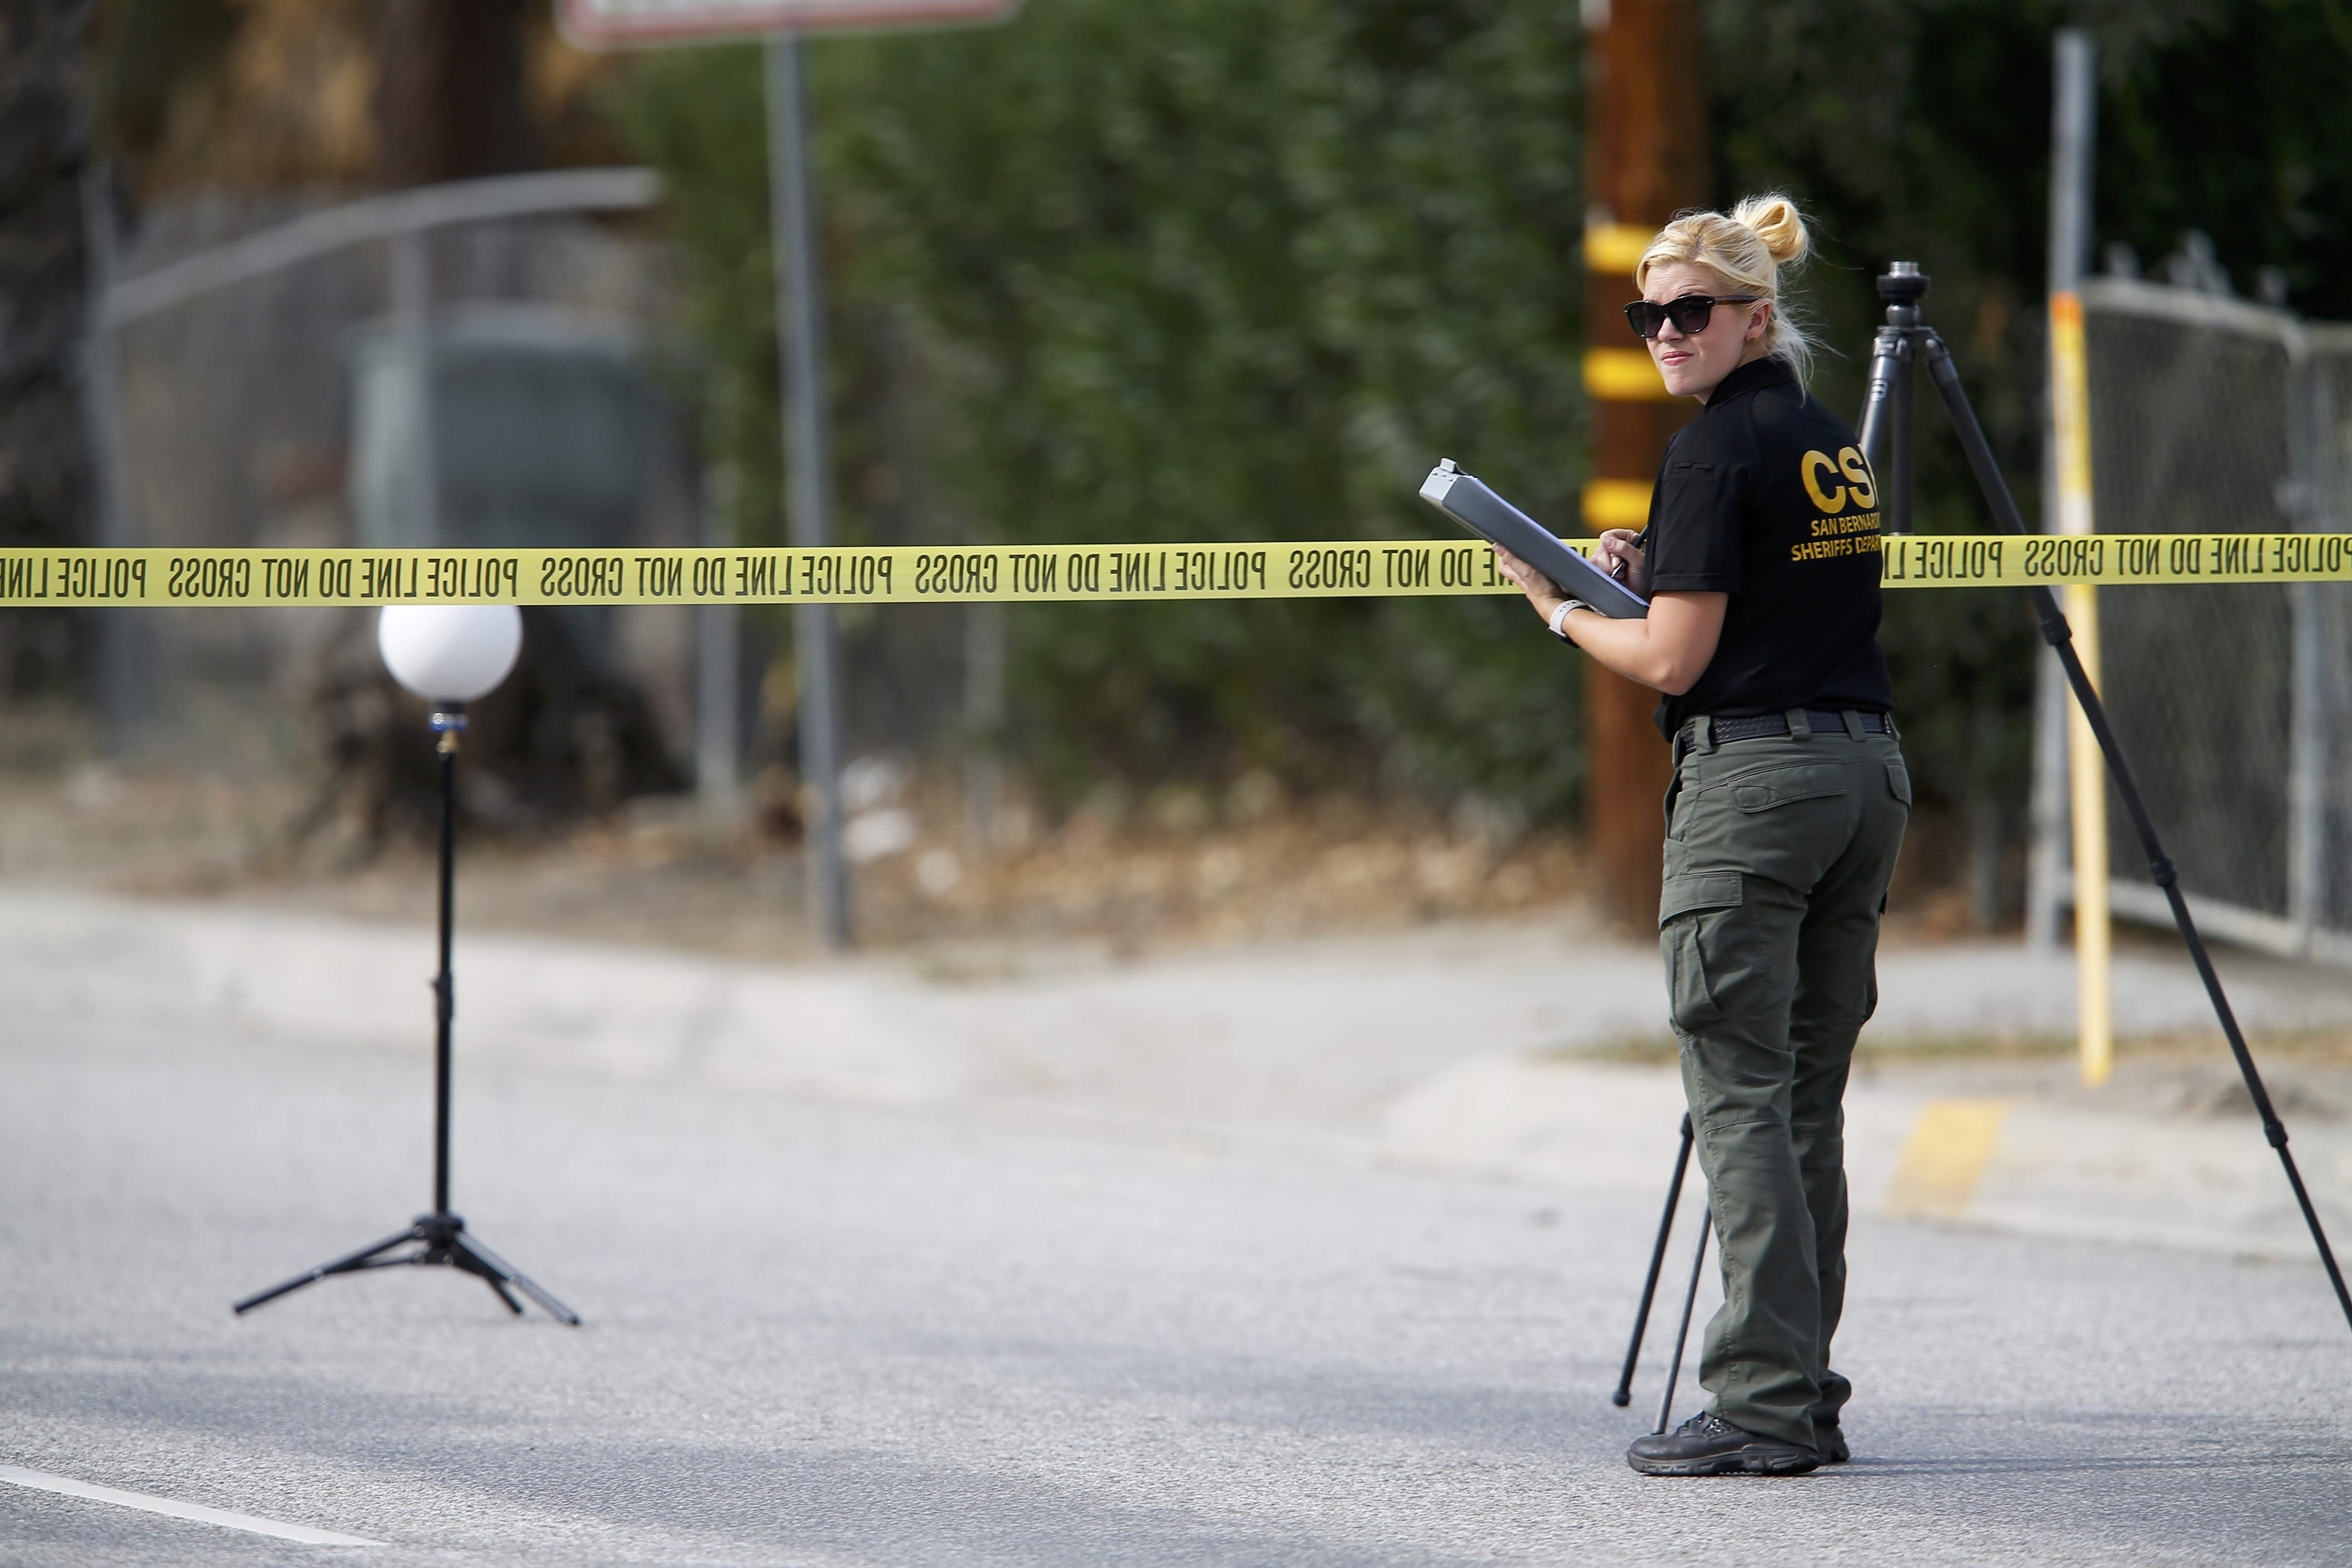 A Sheriff's Office Crime Scene Iinvestigator inspects the scene around an SUV where two suspects were shot by police following a mass shooting in San Bernardino, California December 3, 2015.